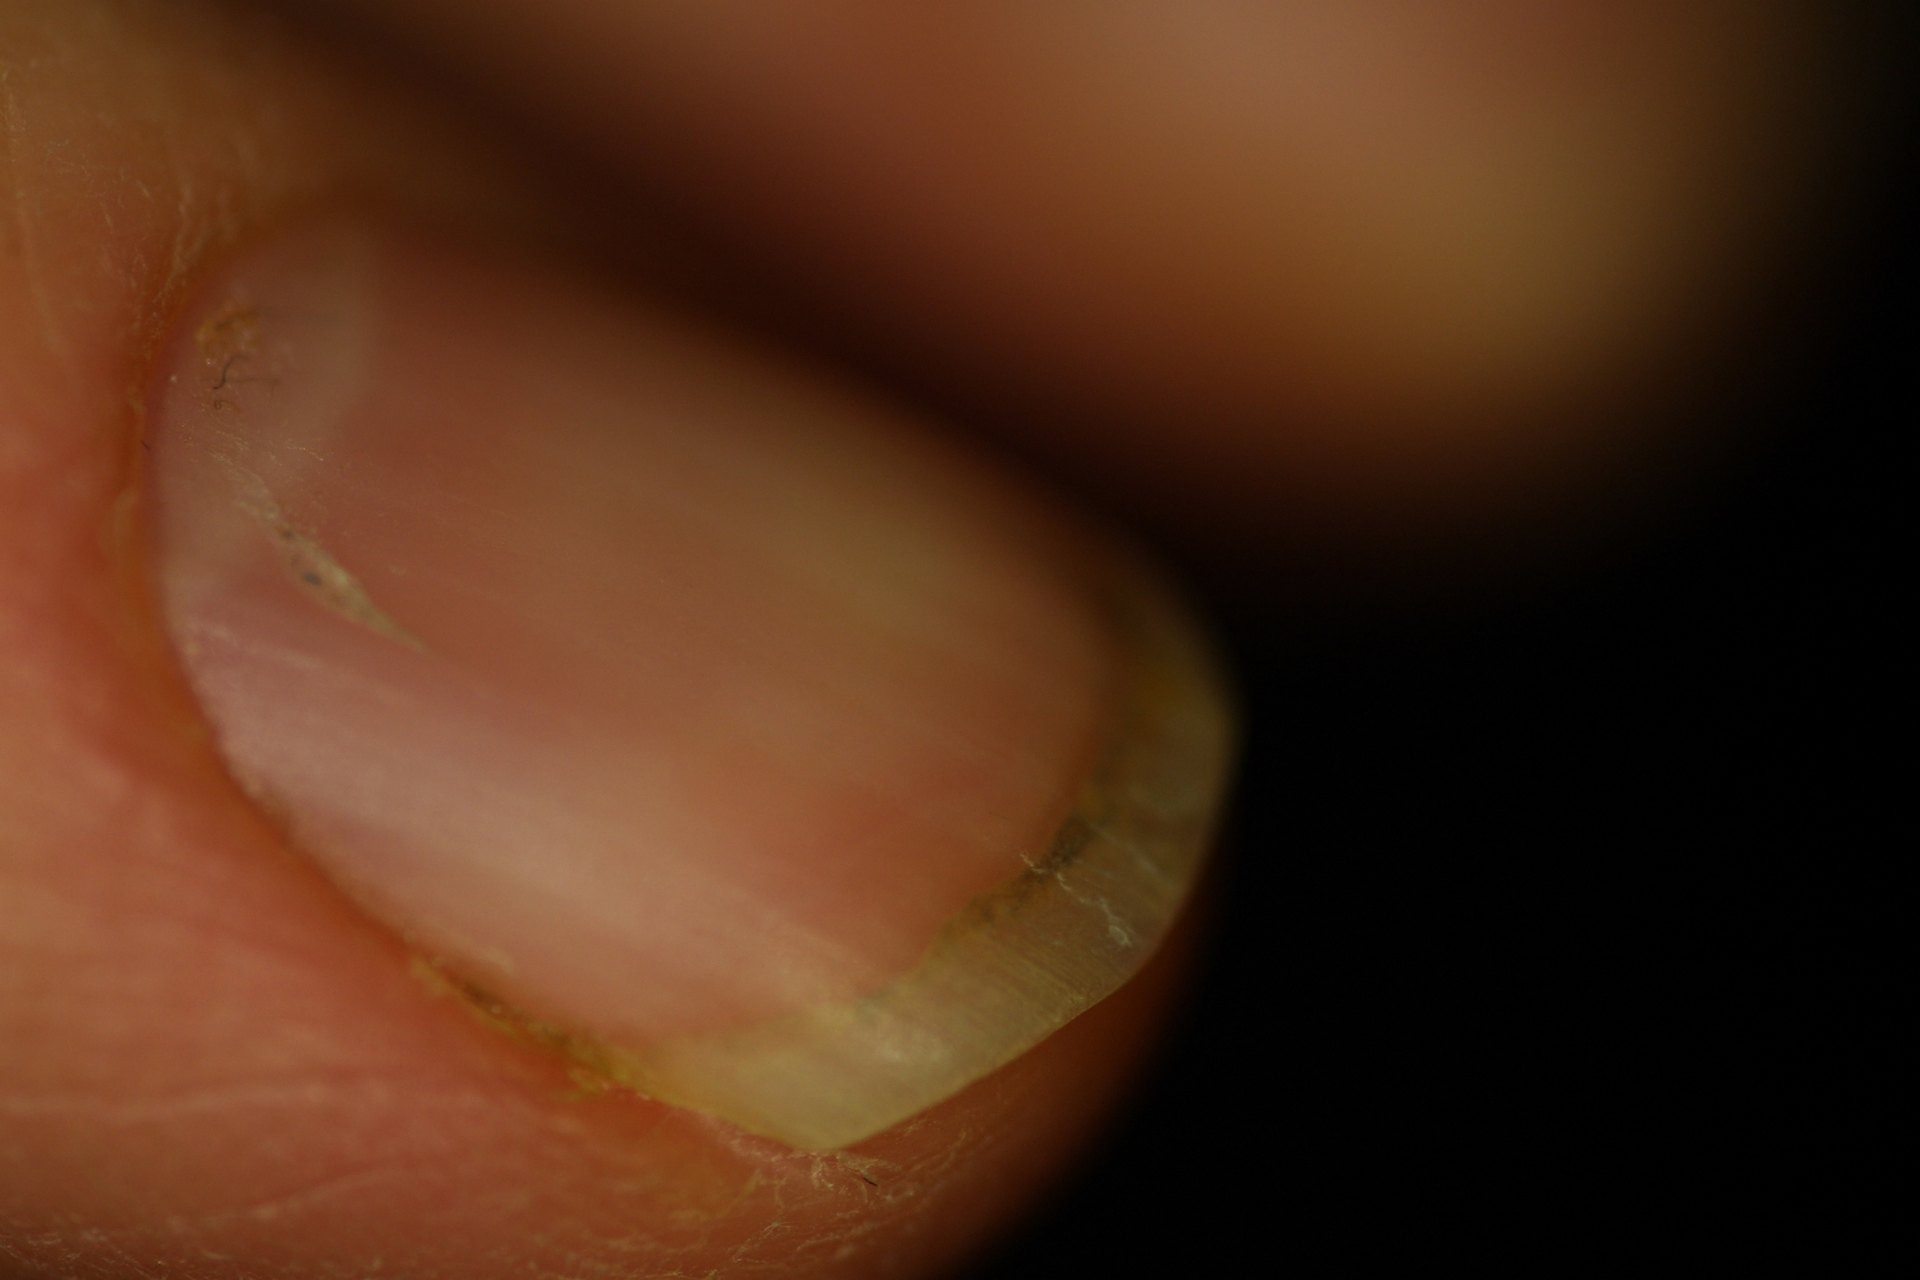 Culture of Trinidad and Tobago - history, people, women Pictures of nail ridges